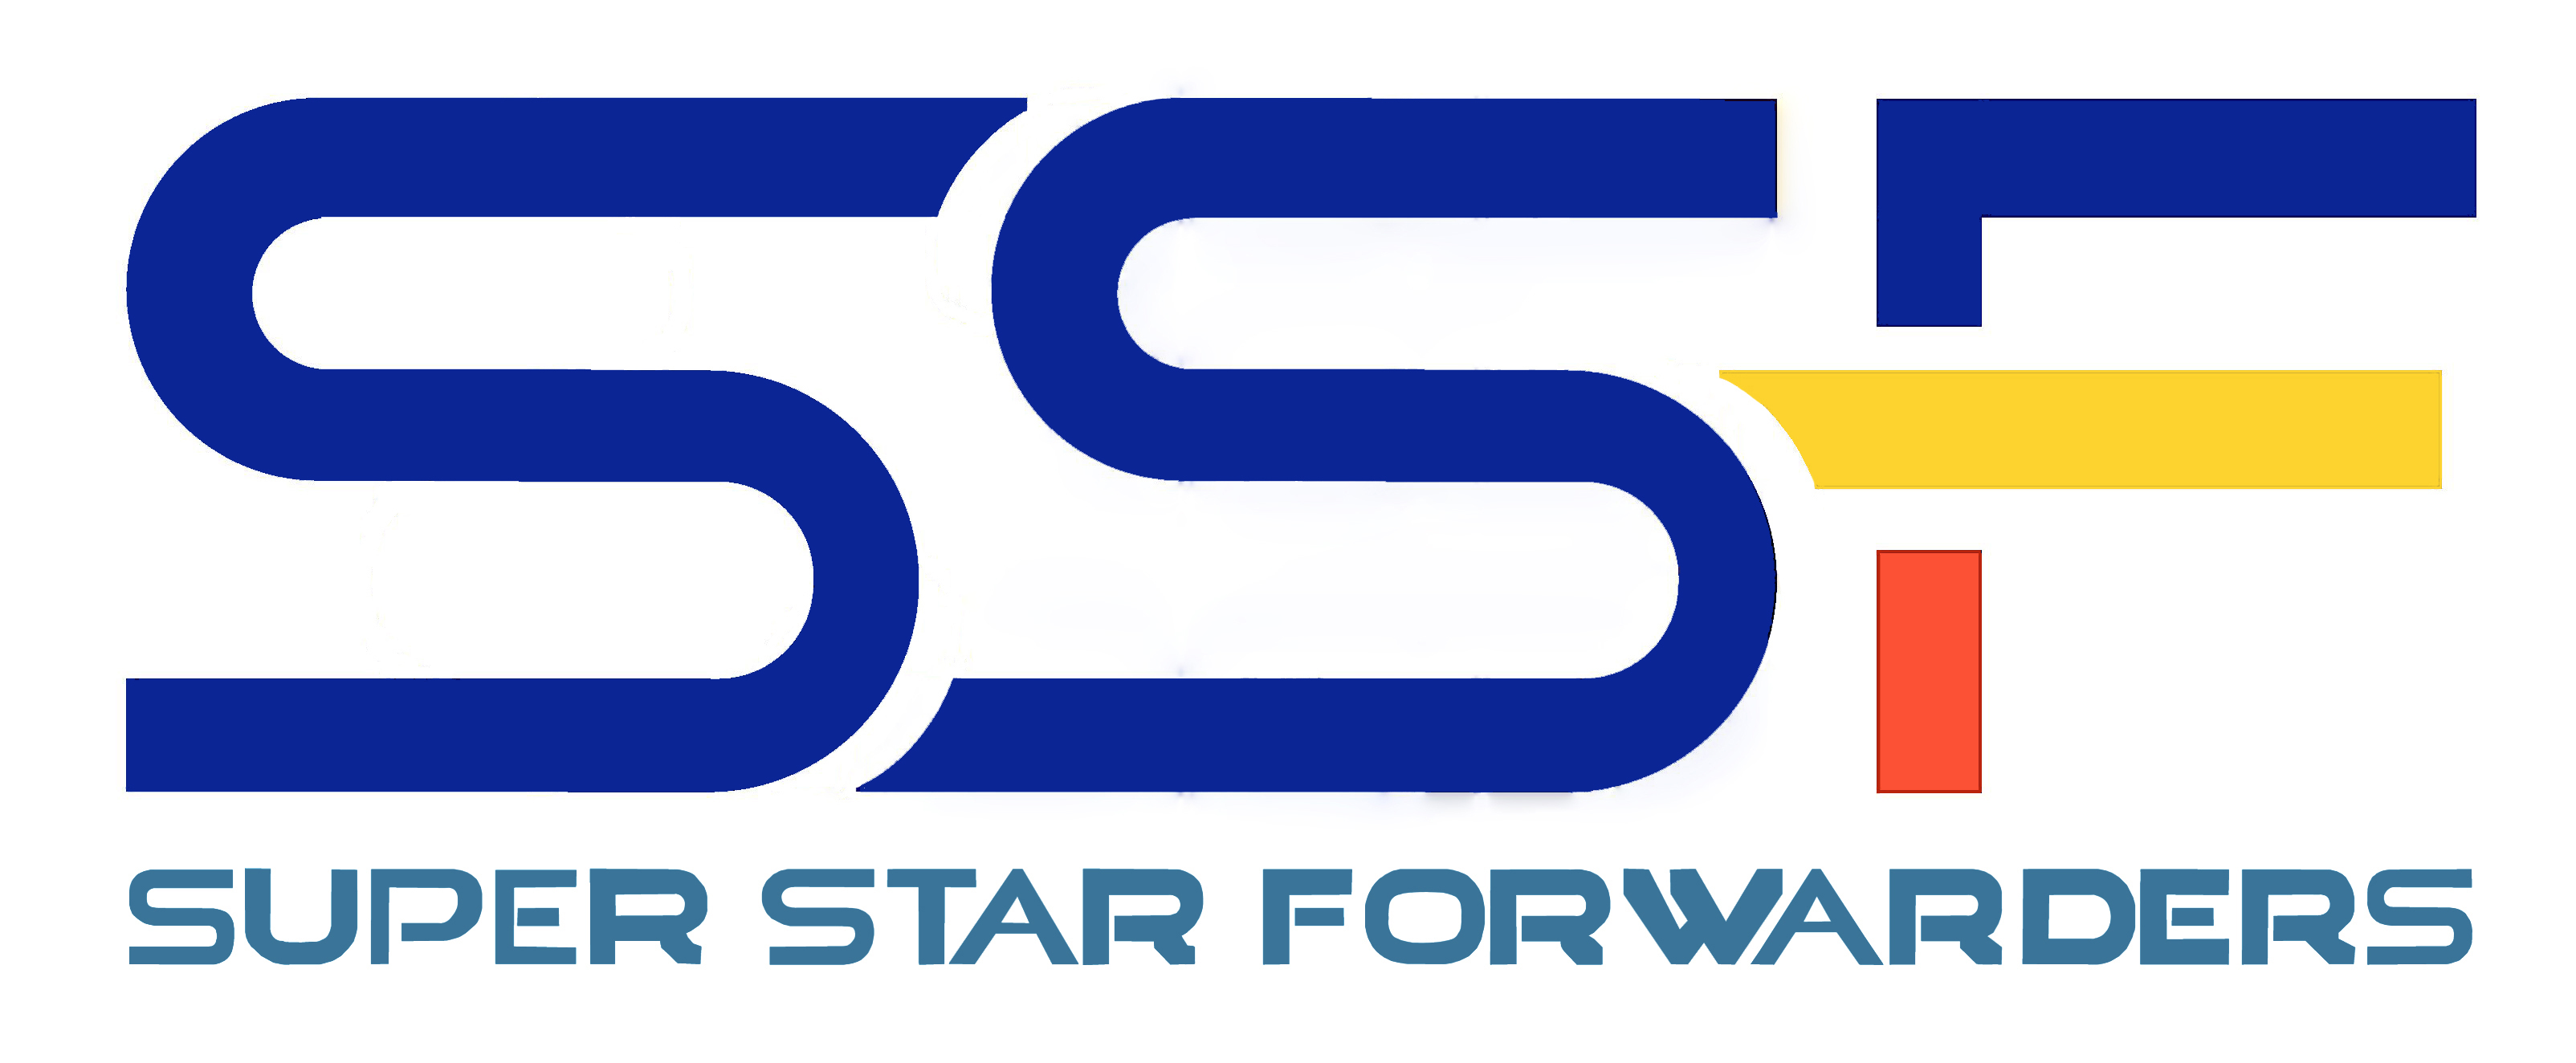 Super Star Forwarders